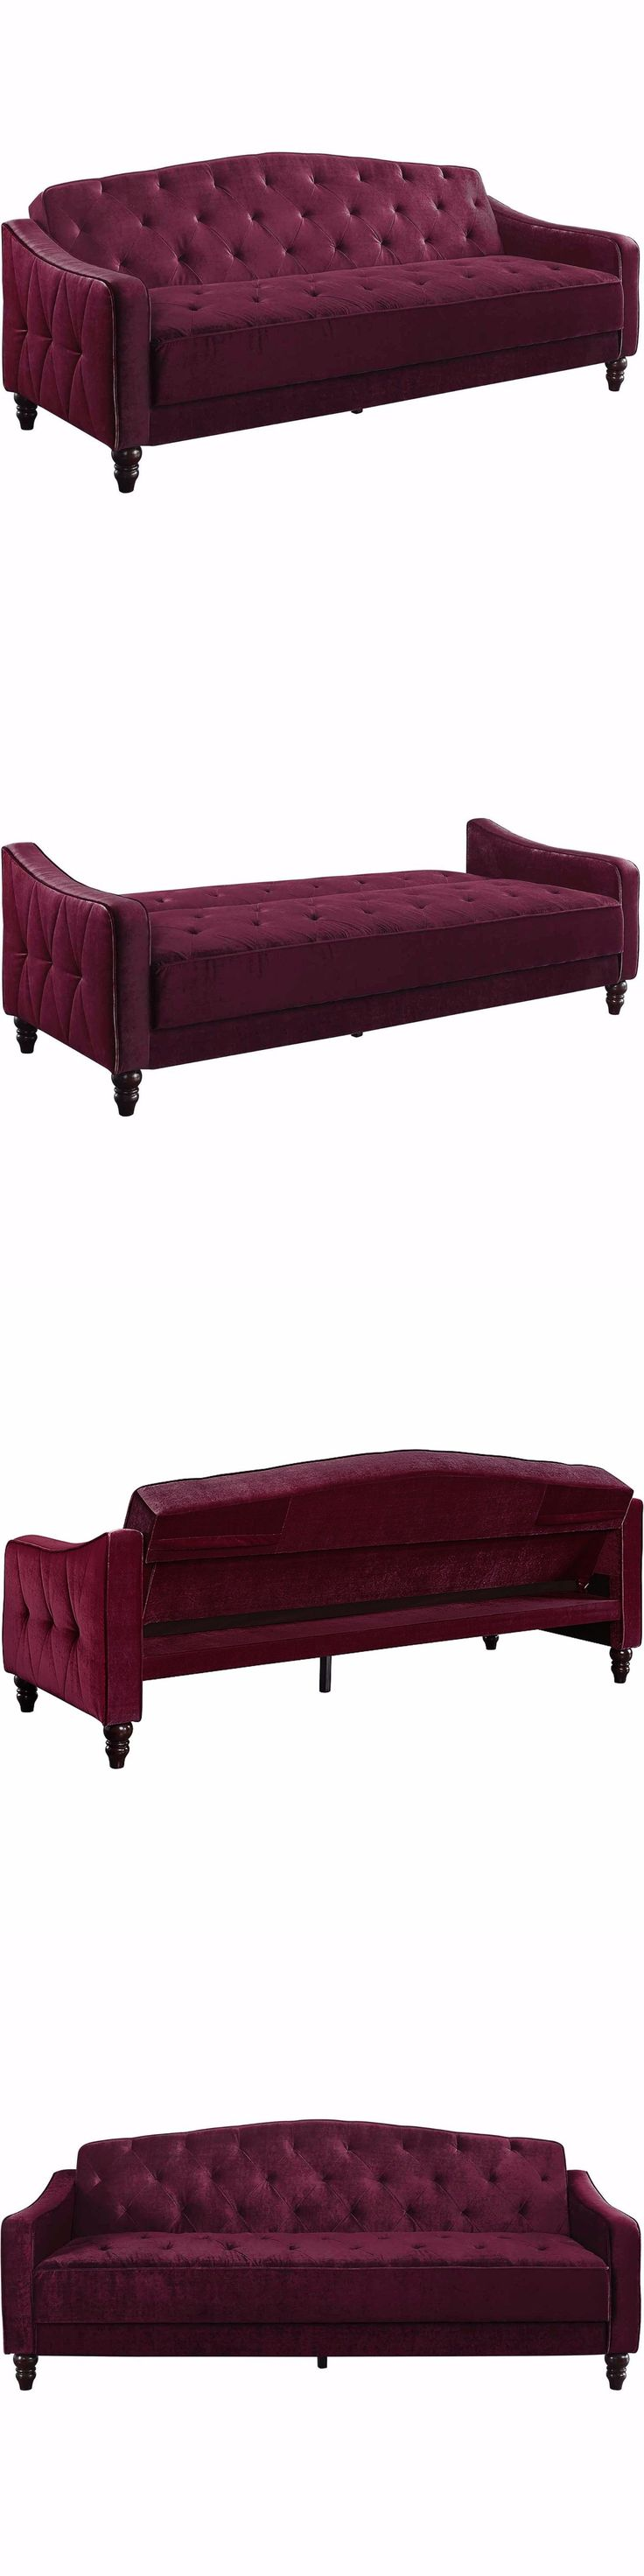 furniture: Vintage Sofa Sleeper Bed Couch Living Room Tufted Burgundy Futon Lounge Home -> BUY IT NOW ONLY: $380 on eBay!